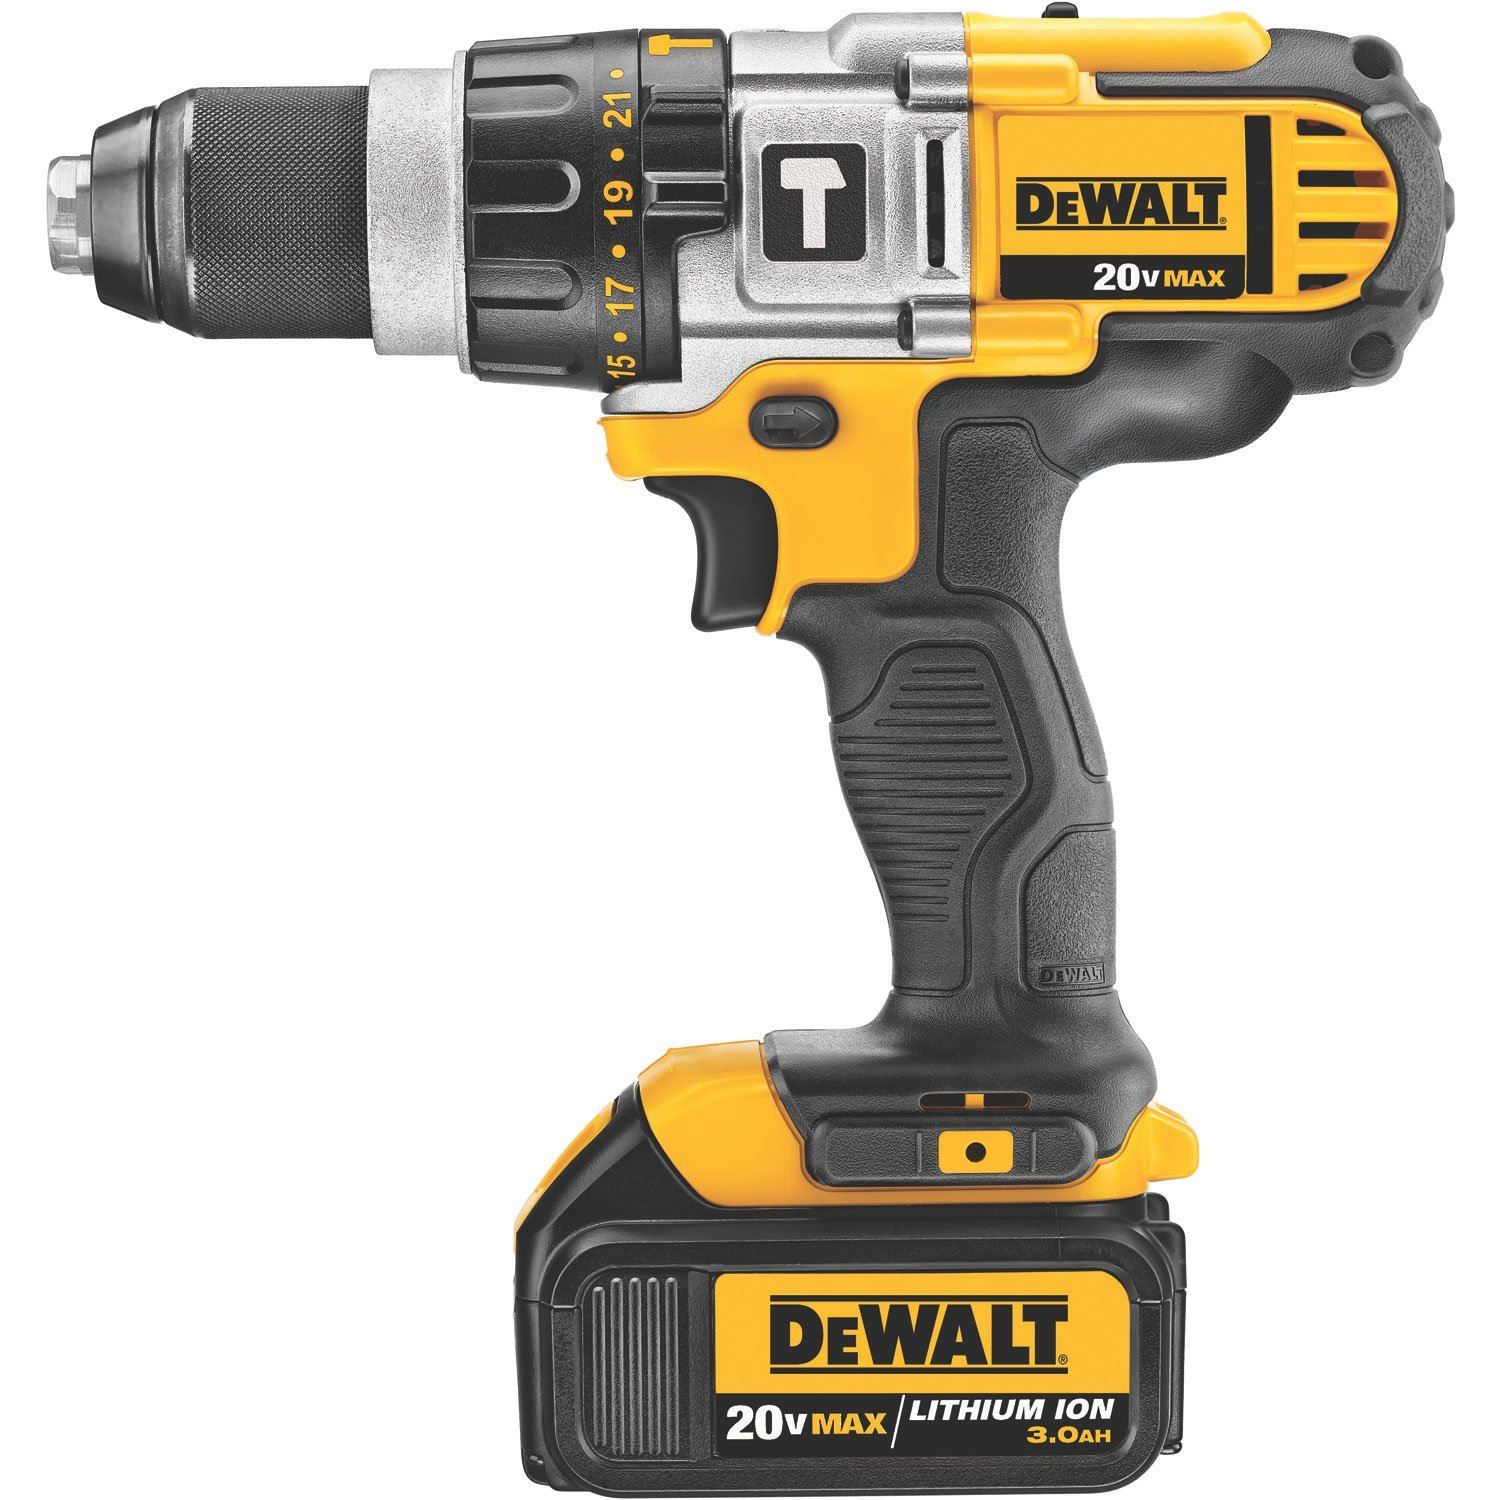 DEWALT RECON DeWALT 20V MAX Li-Ion Premium Hammerdrill Driver Kit (Reconditioned DCD985L2R) at Sears.com